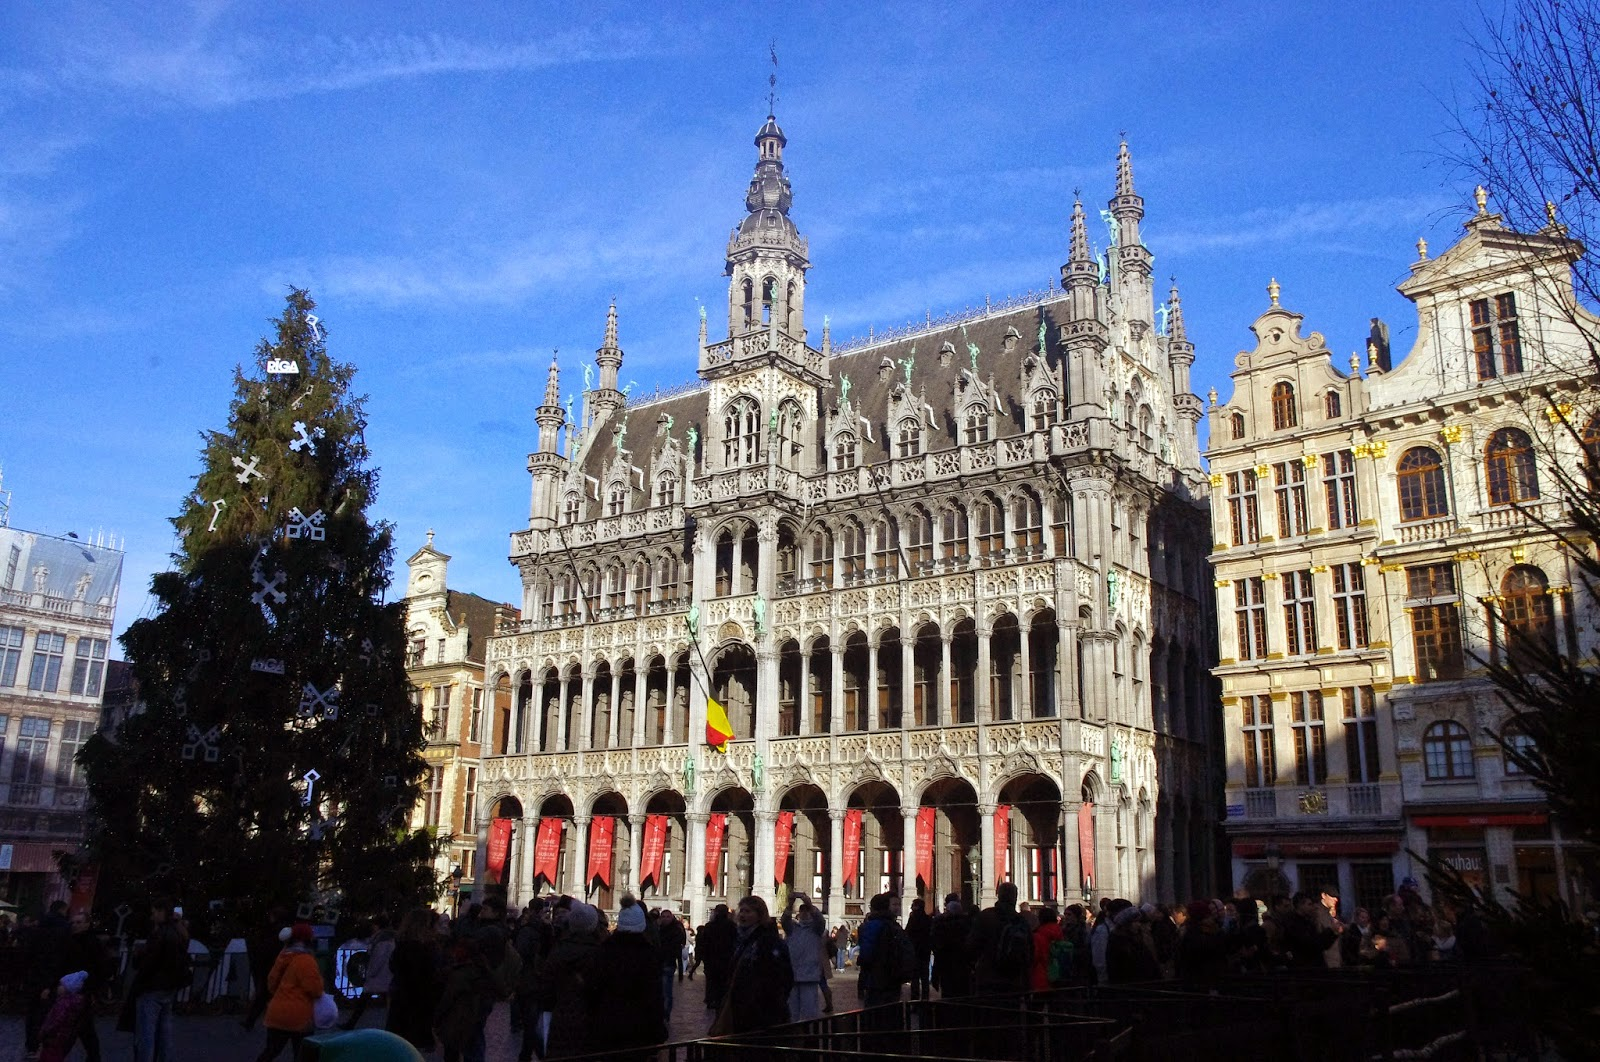 A Weekend of Chocolate, Beer & Christmas Markets in Brussels